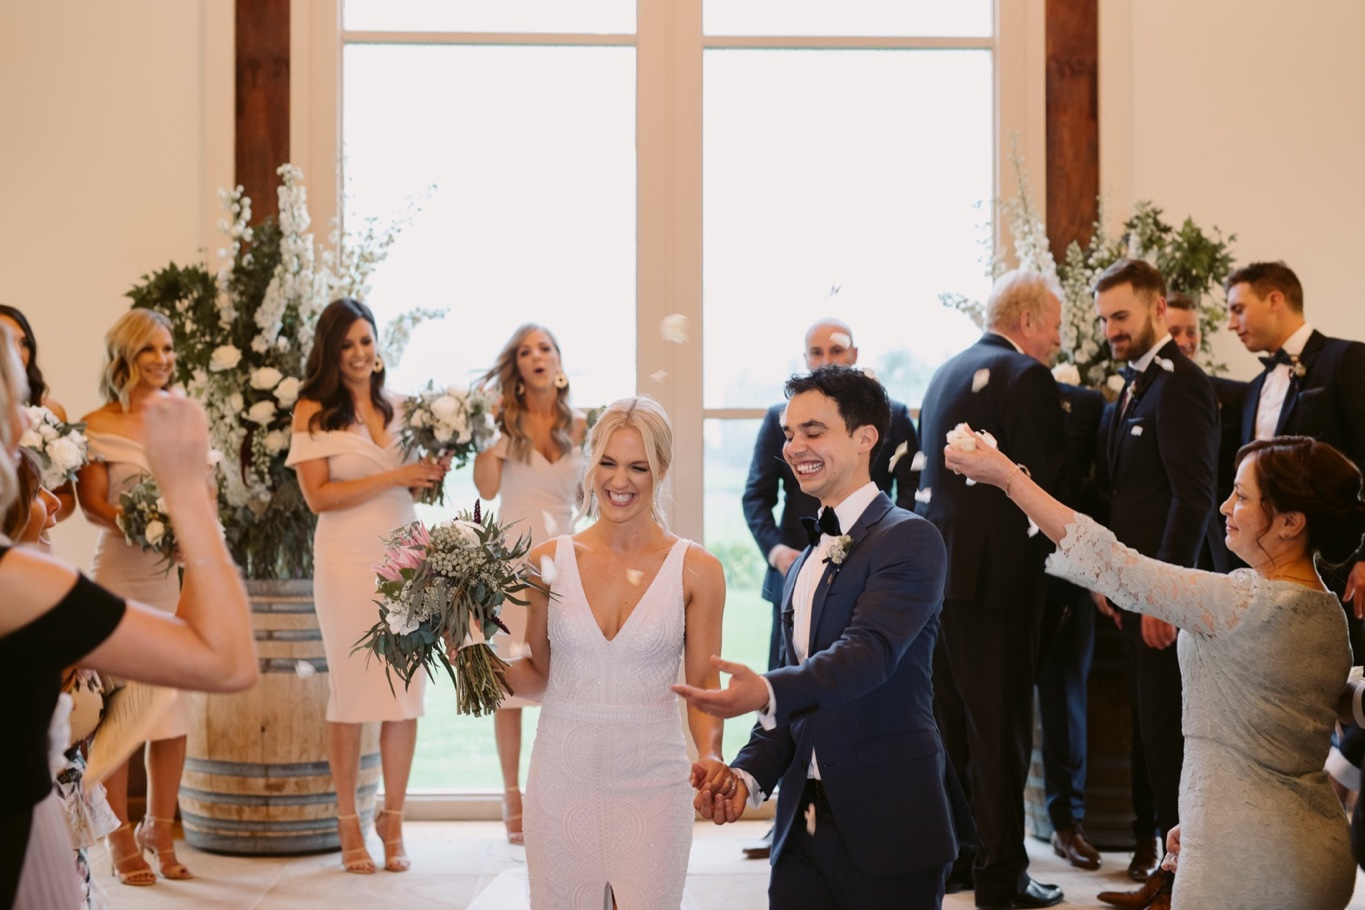 Immerse Yarra Valley Winery Wedding Photography59.jpg